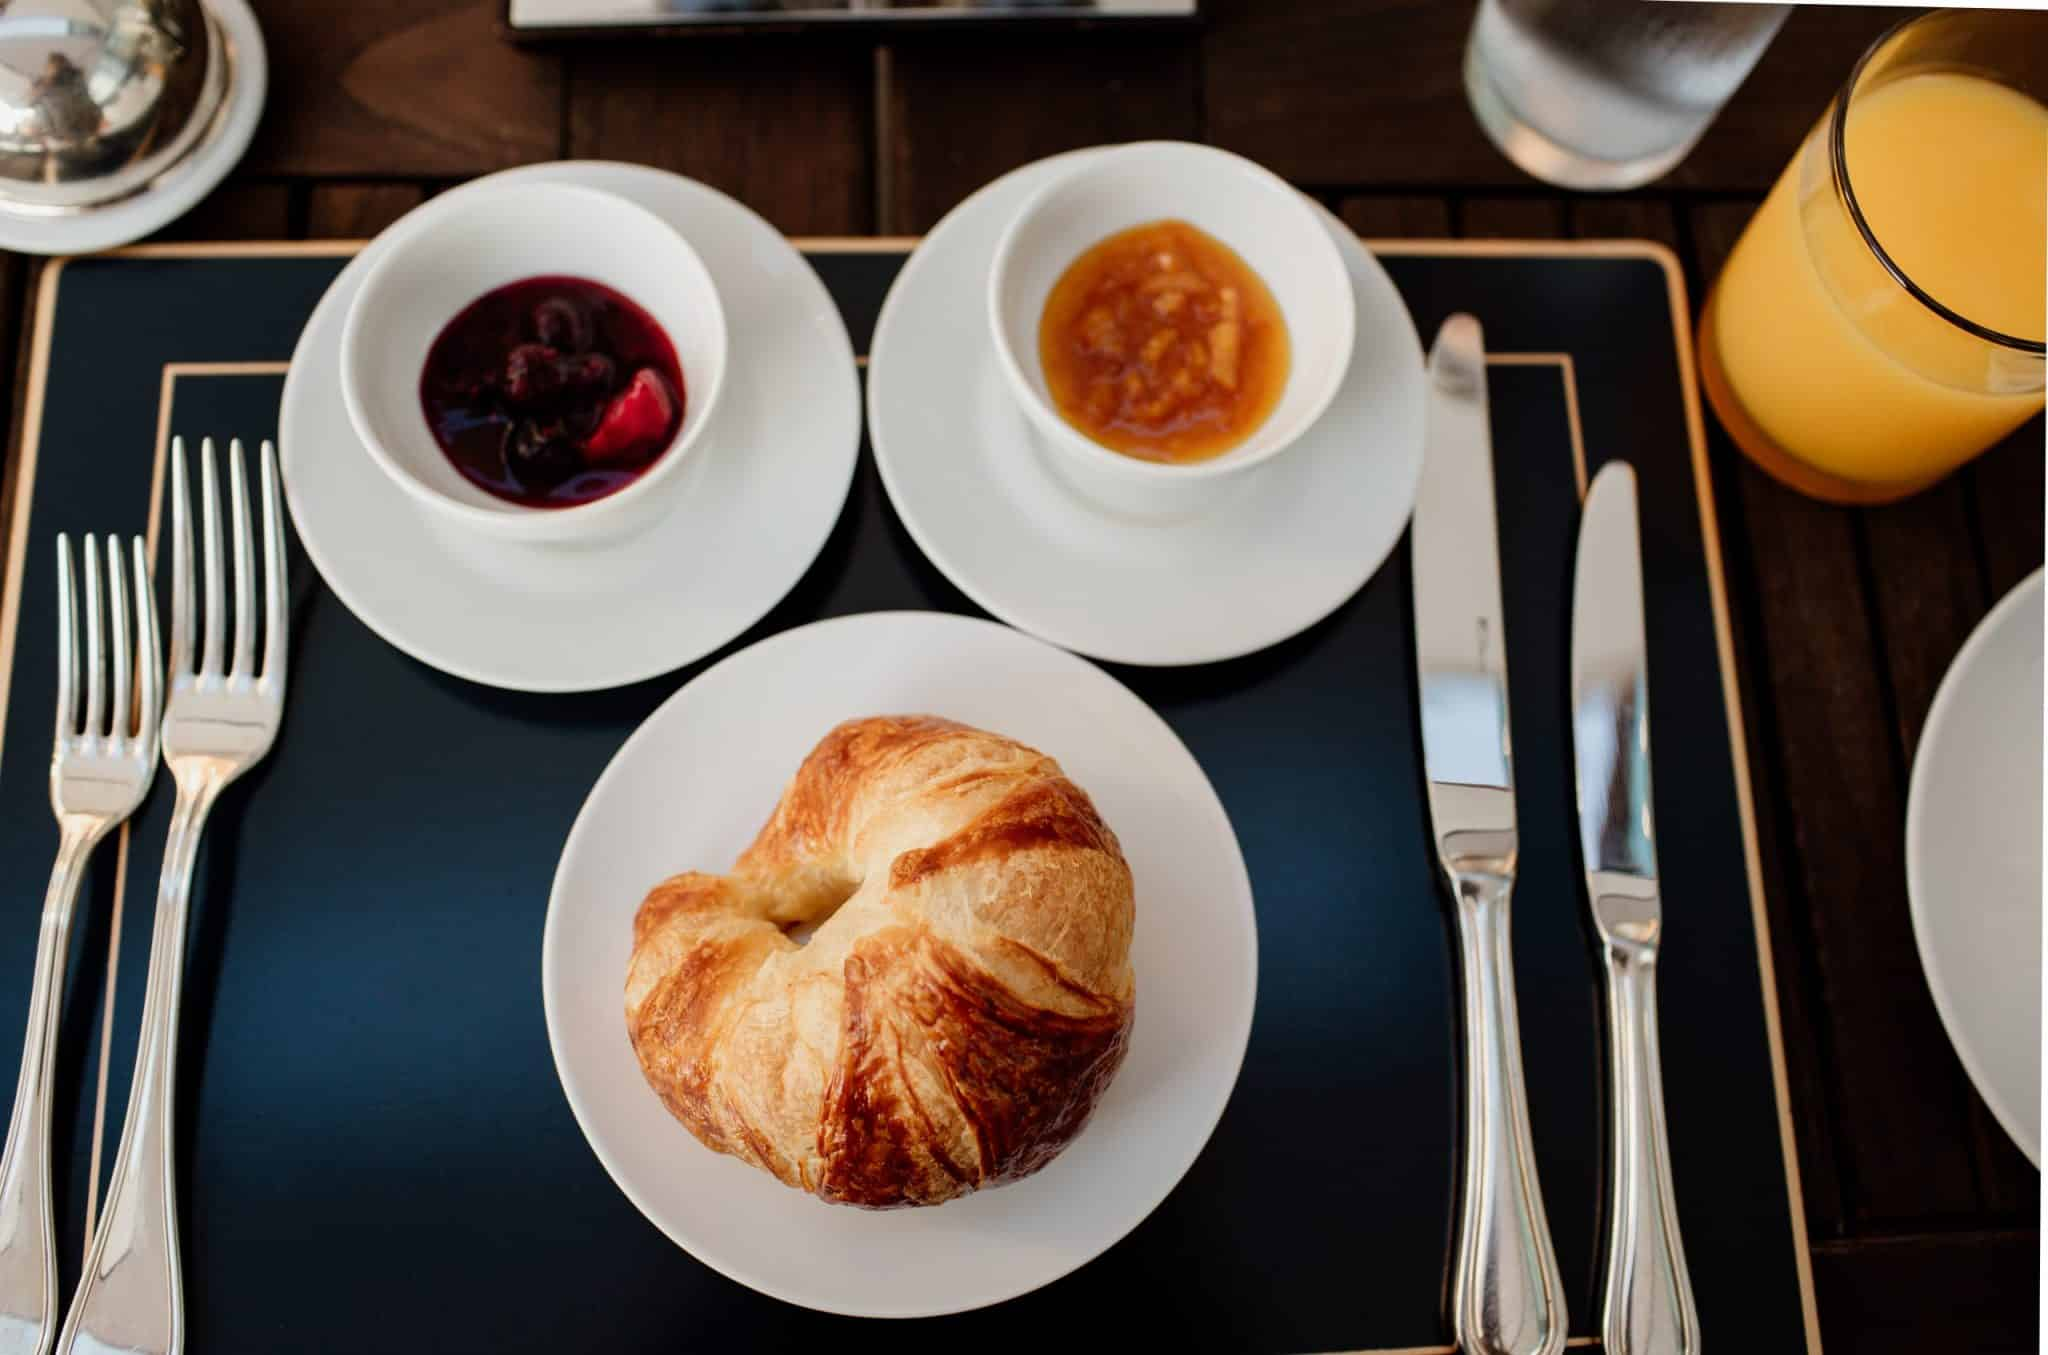 Croissant and spread for breakfast